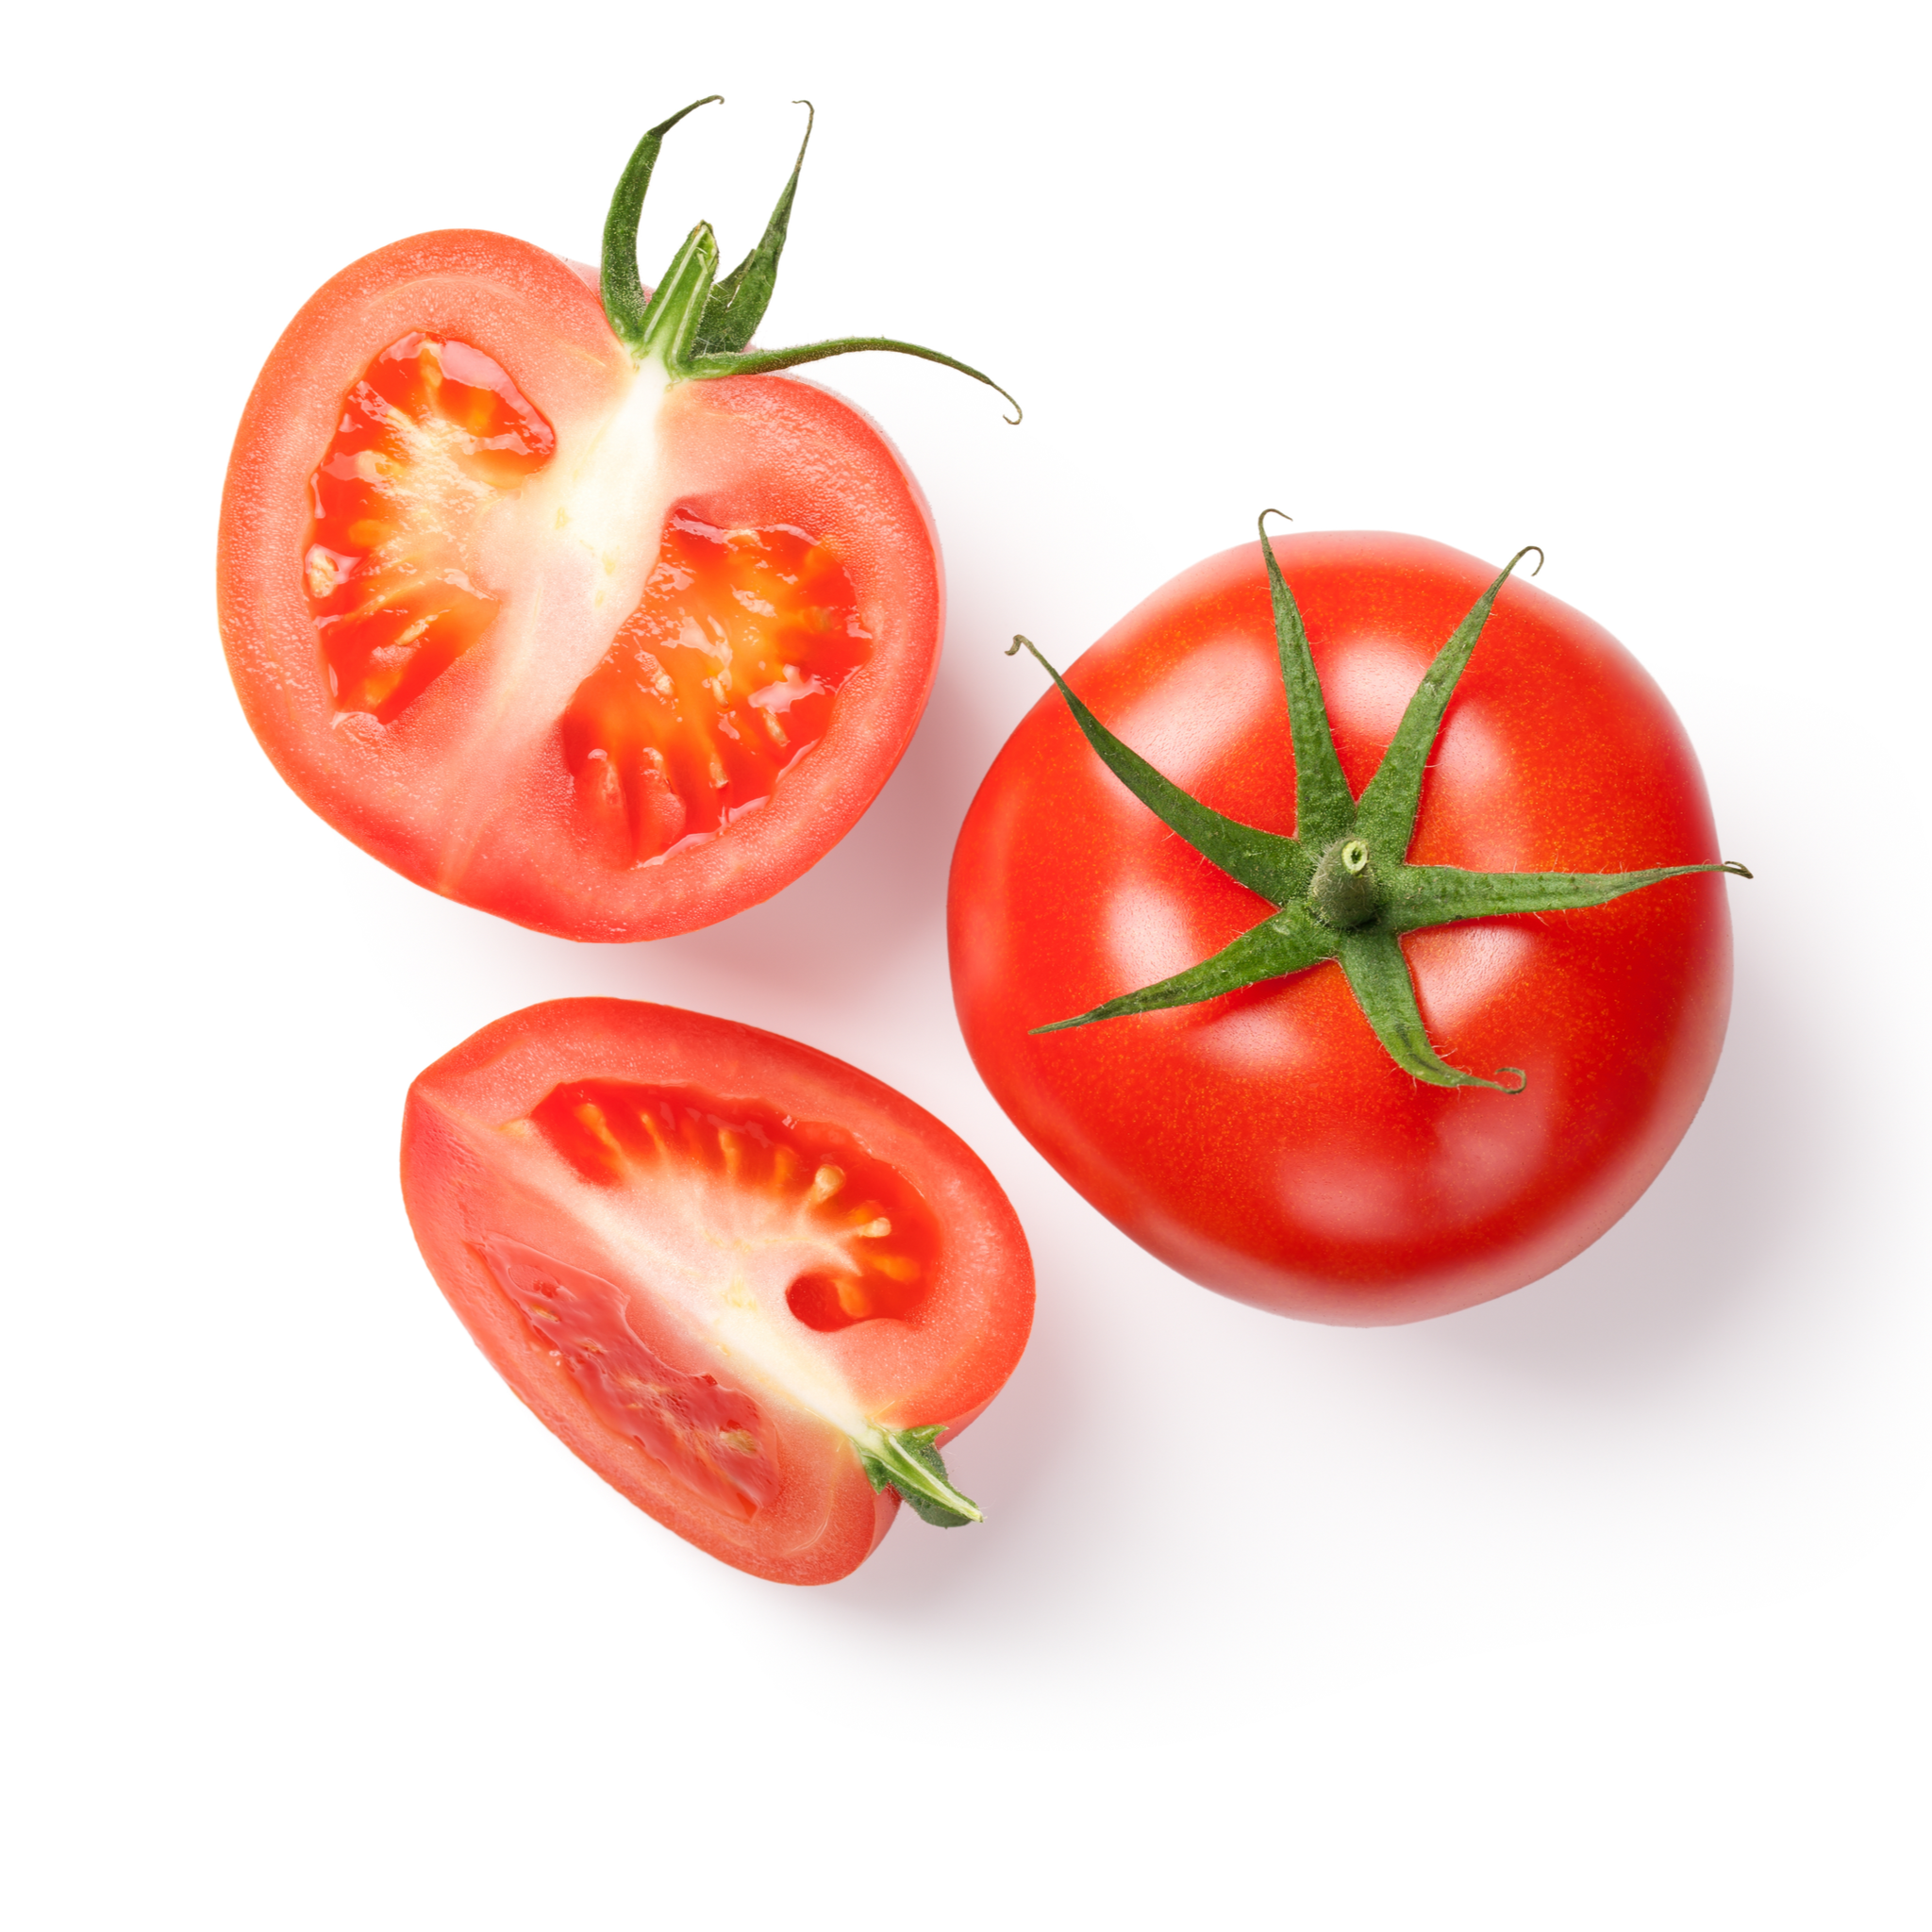 Fresh Salad Tomatoes (about 120g) - Imported Weekly